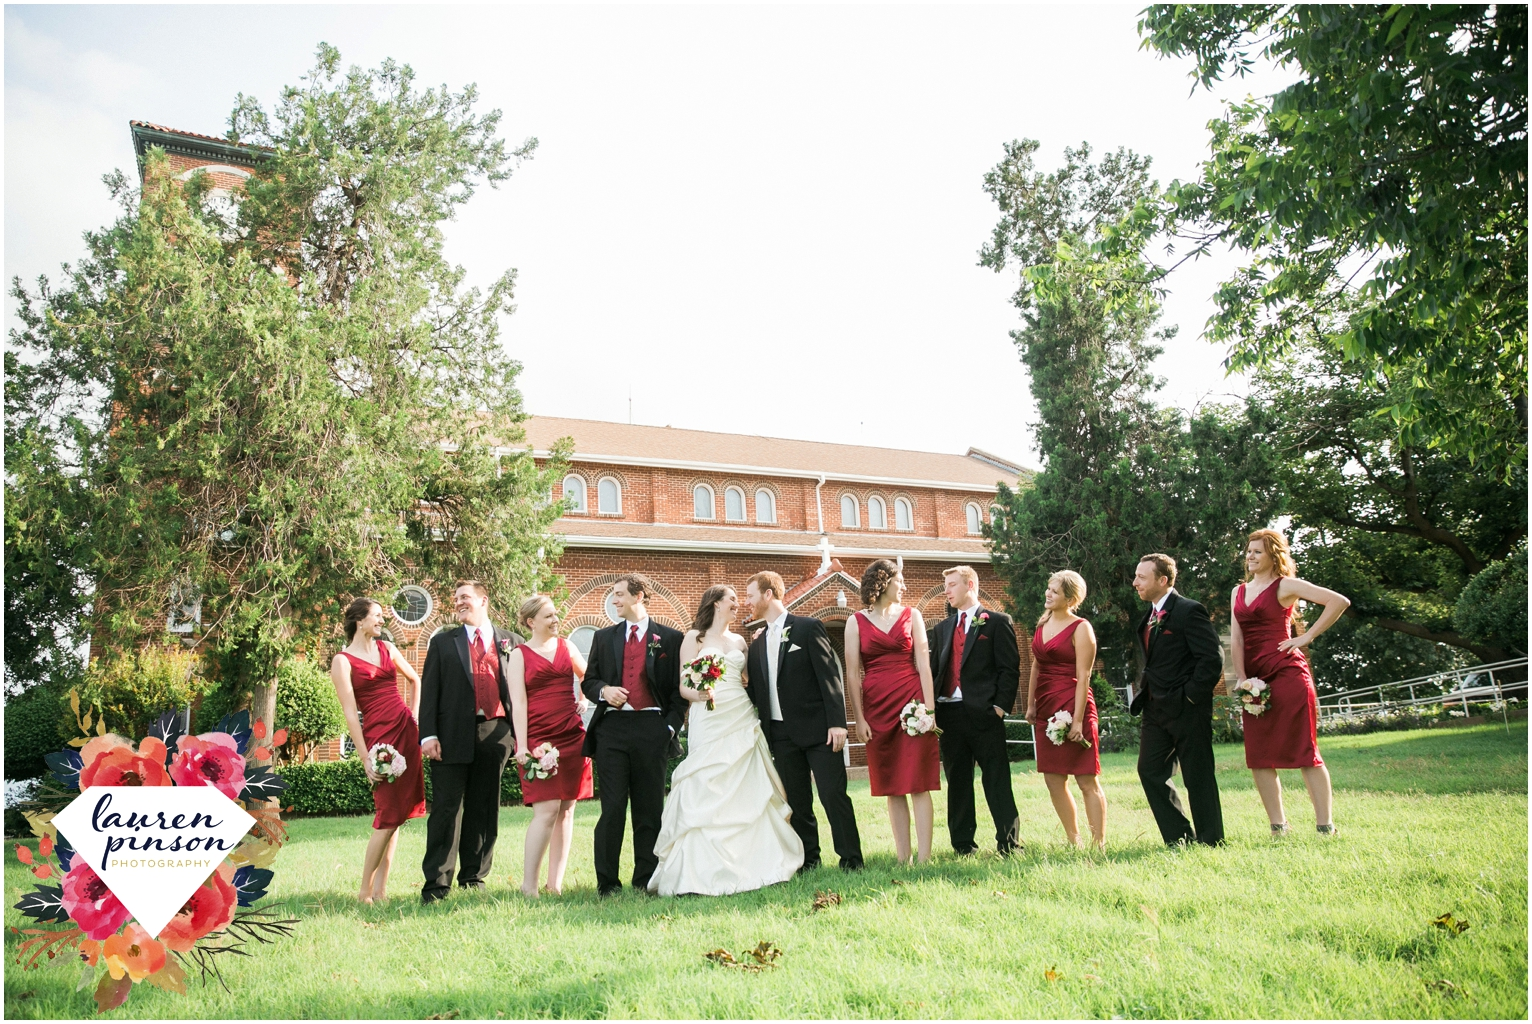 wichita-falls-wedding-photographer-OUR-Lady-queen-of-peace-catholic-wedding-the-forum-photography_0939.jpg